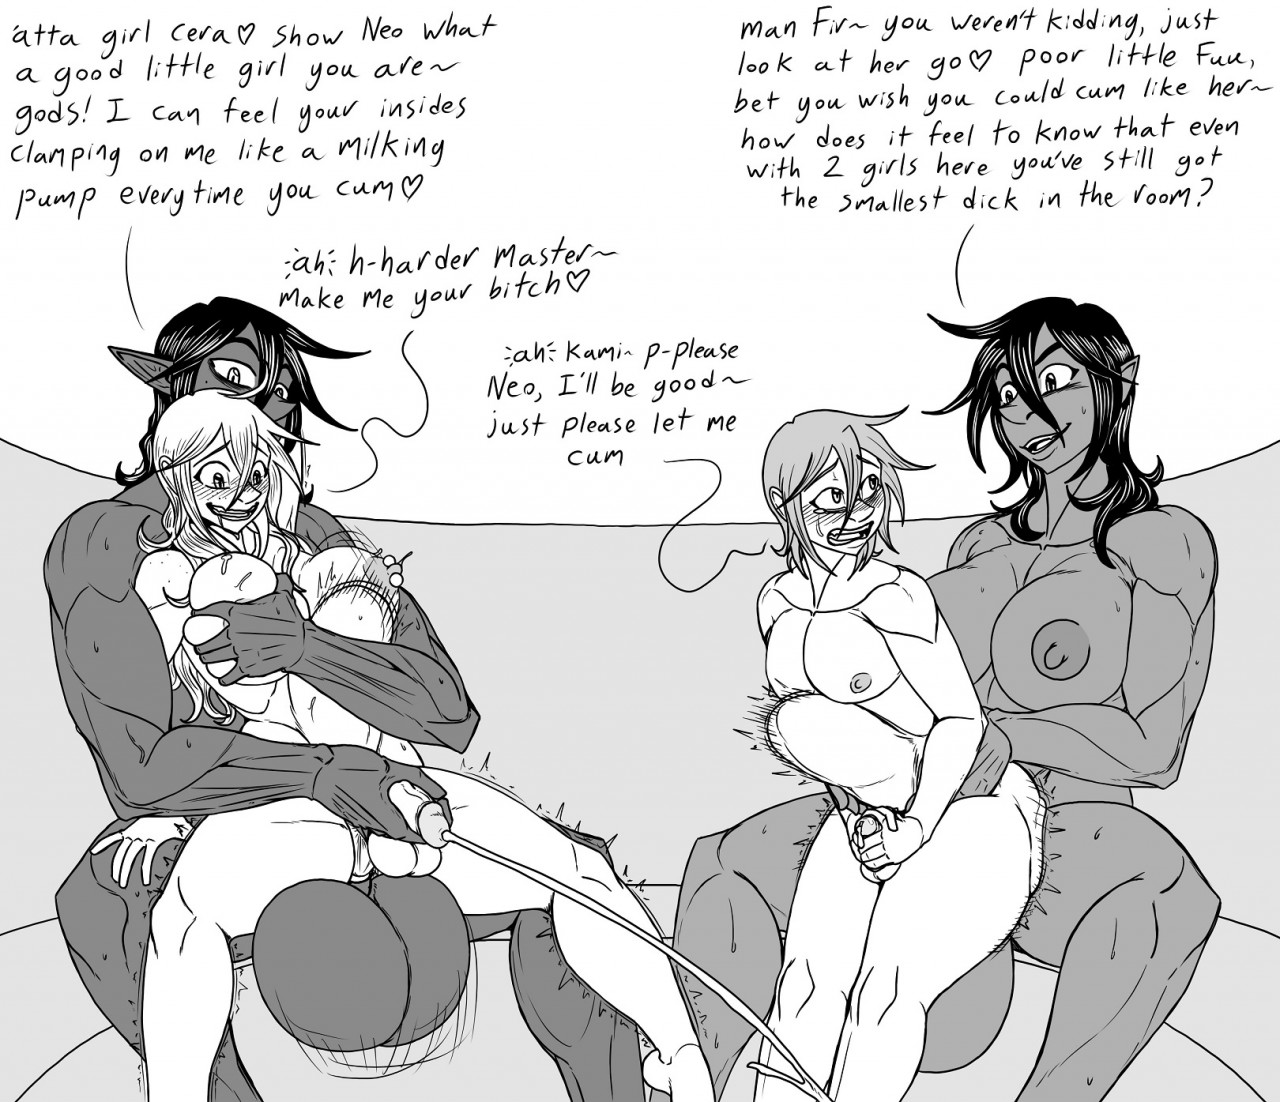 1584731080.kiahl_firnez_and_neo_relaxing